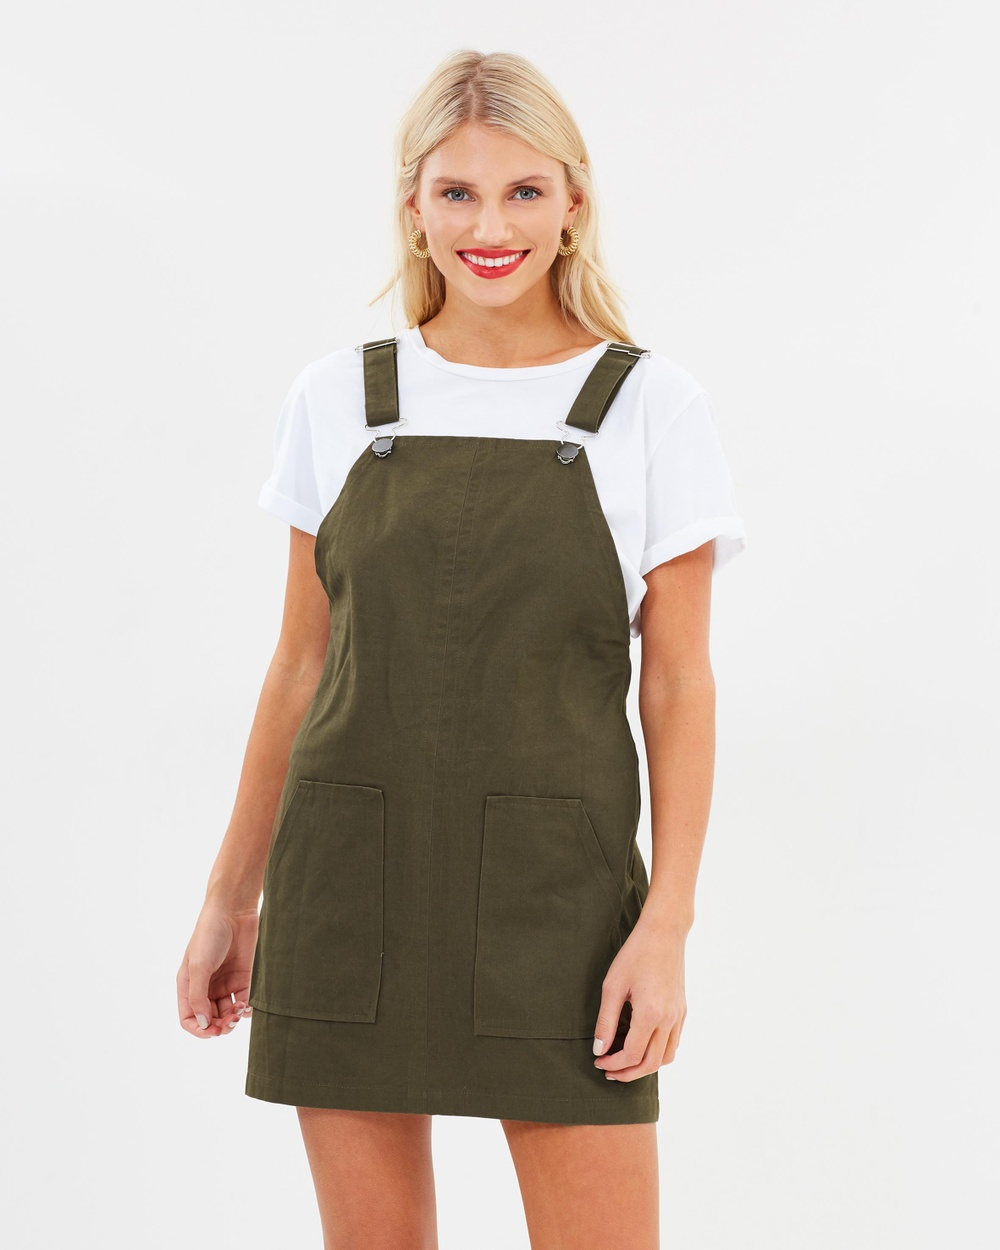 Atmos & Here ICONIC EXCLUSIVE Atomic Pinafore Dress Dresses Khaki ICONIC EXCLUSIVE Atomic Pinafore Dress